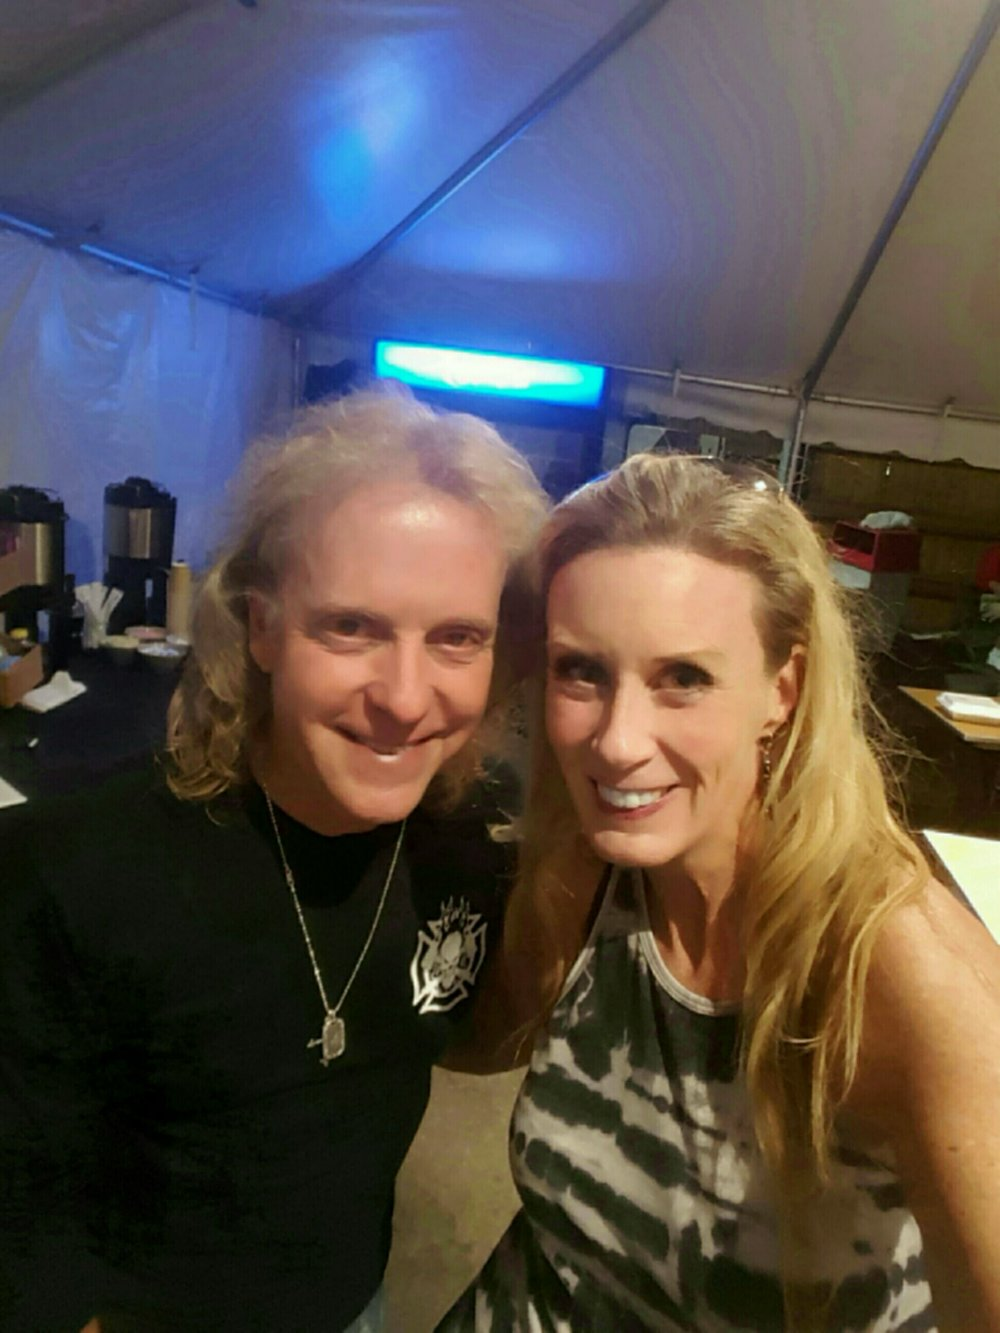 Stacey Sherman and Jack Blades from Night Ranger